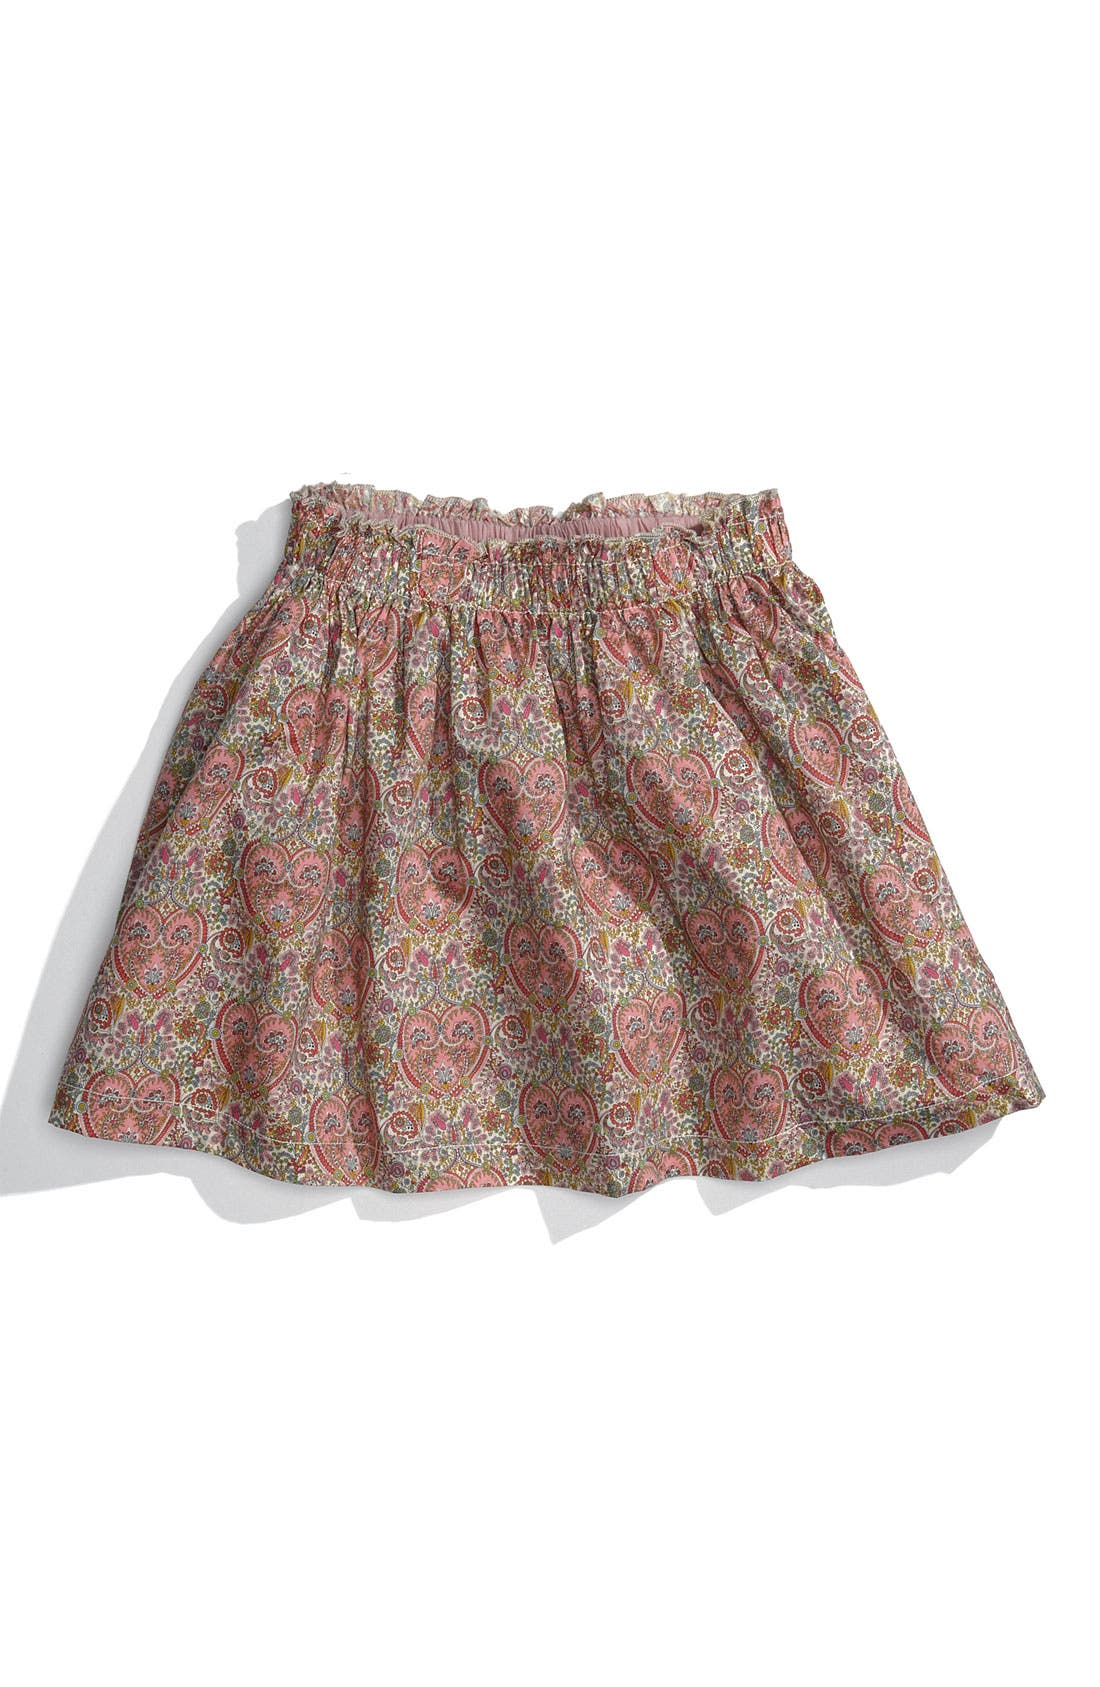 Alternate Image 1 Selected - Peek 'Liberty' Skirt (Toddler, Little Girl & Big Girls)